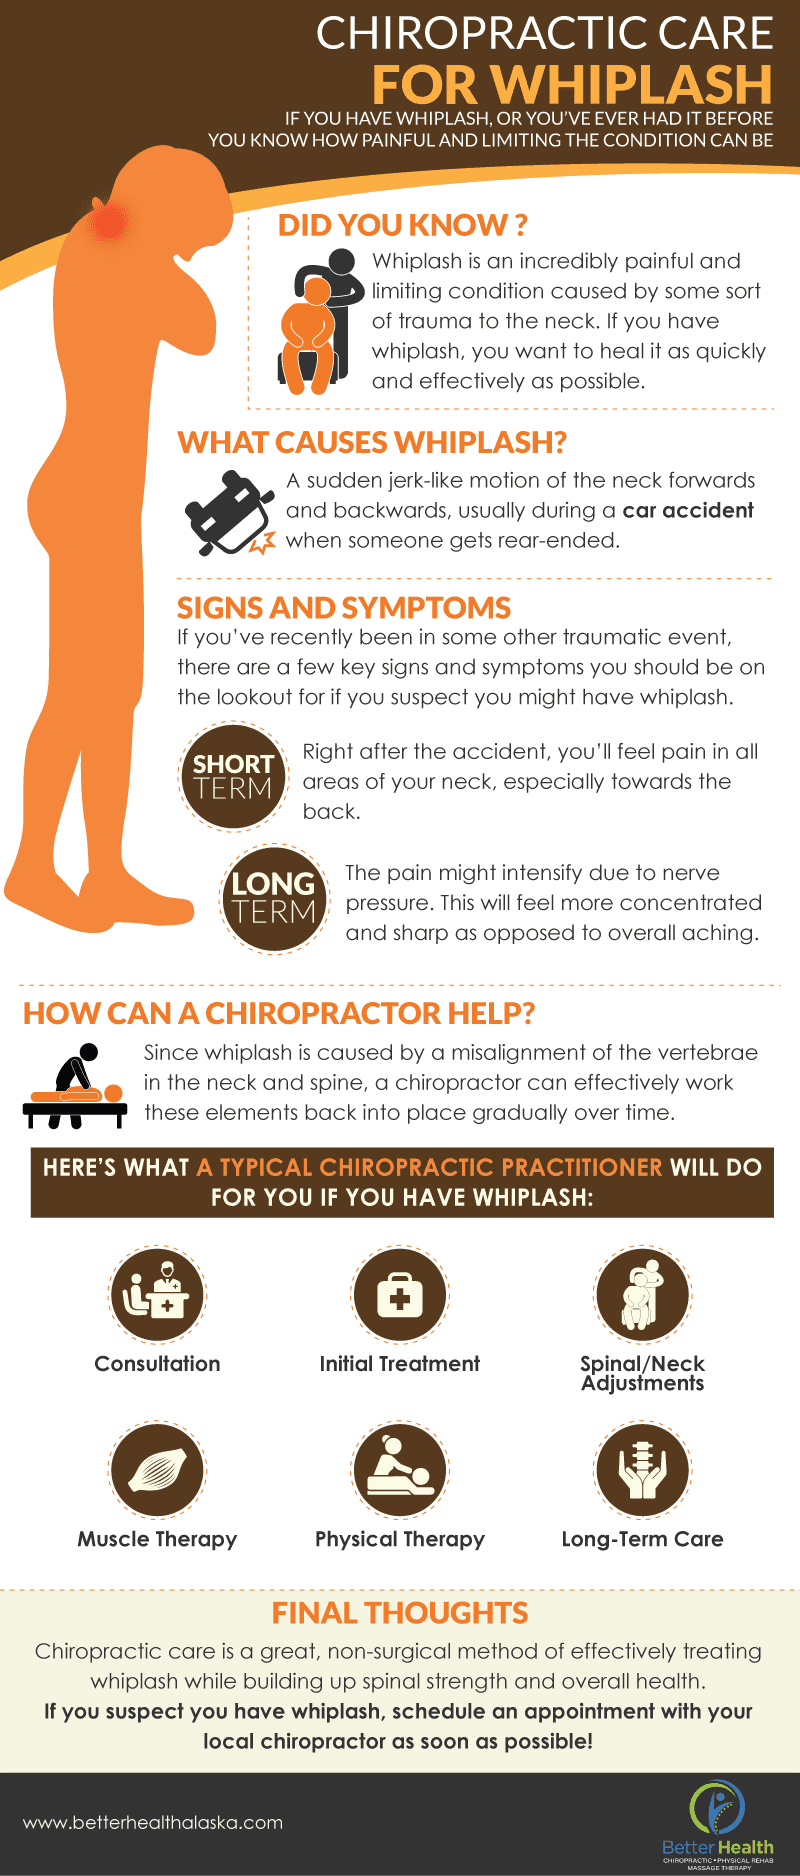 Chiropractic Care for Whiplash Infographic